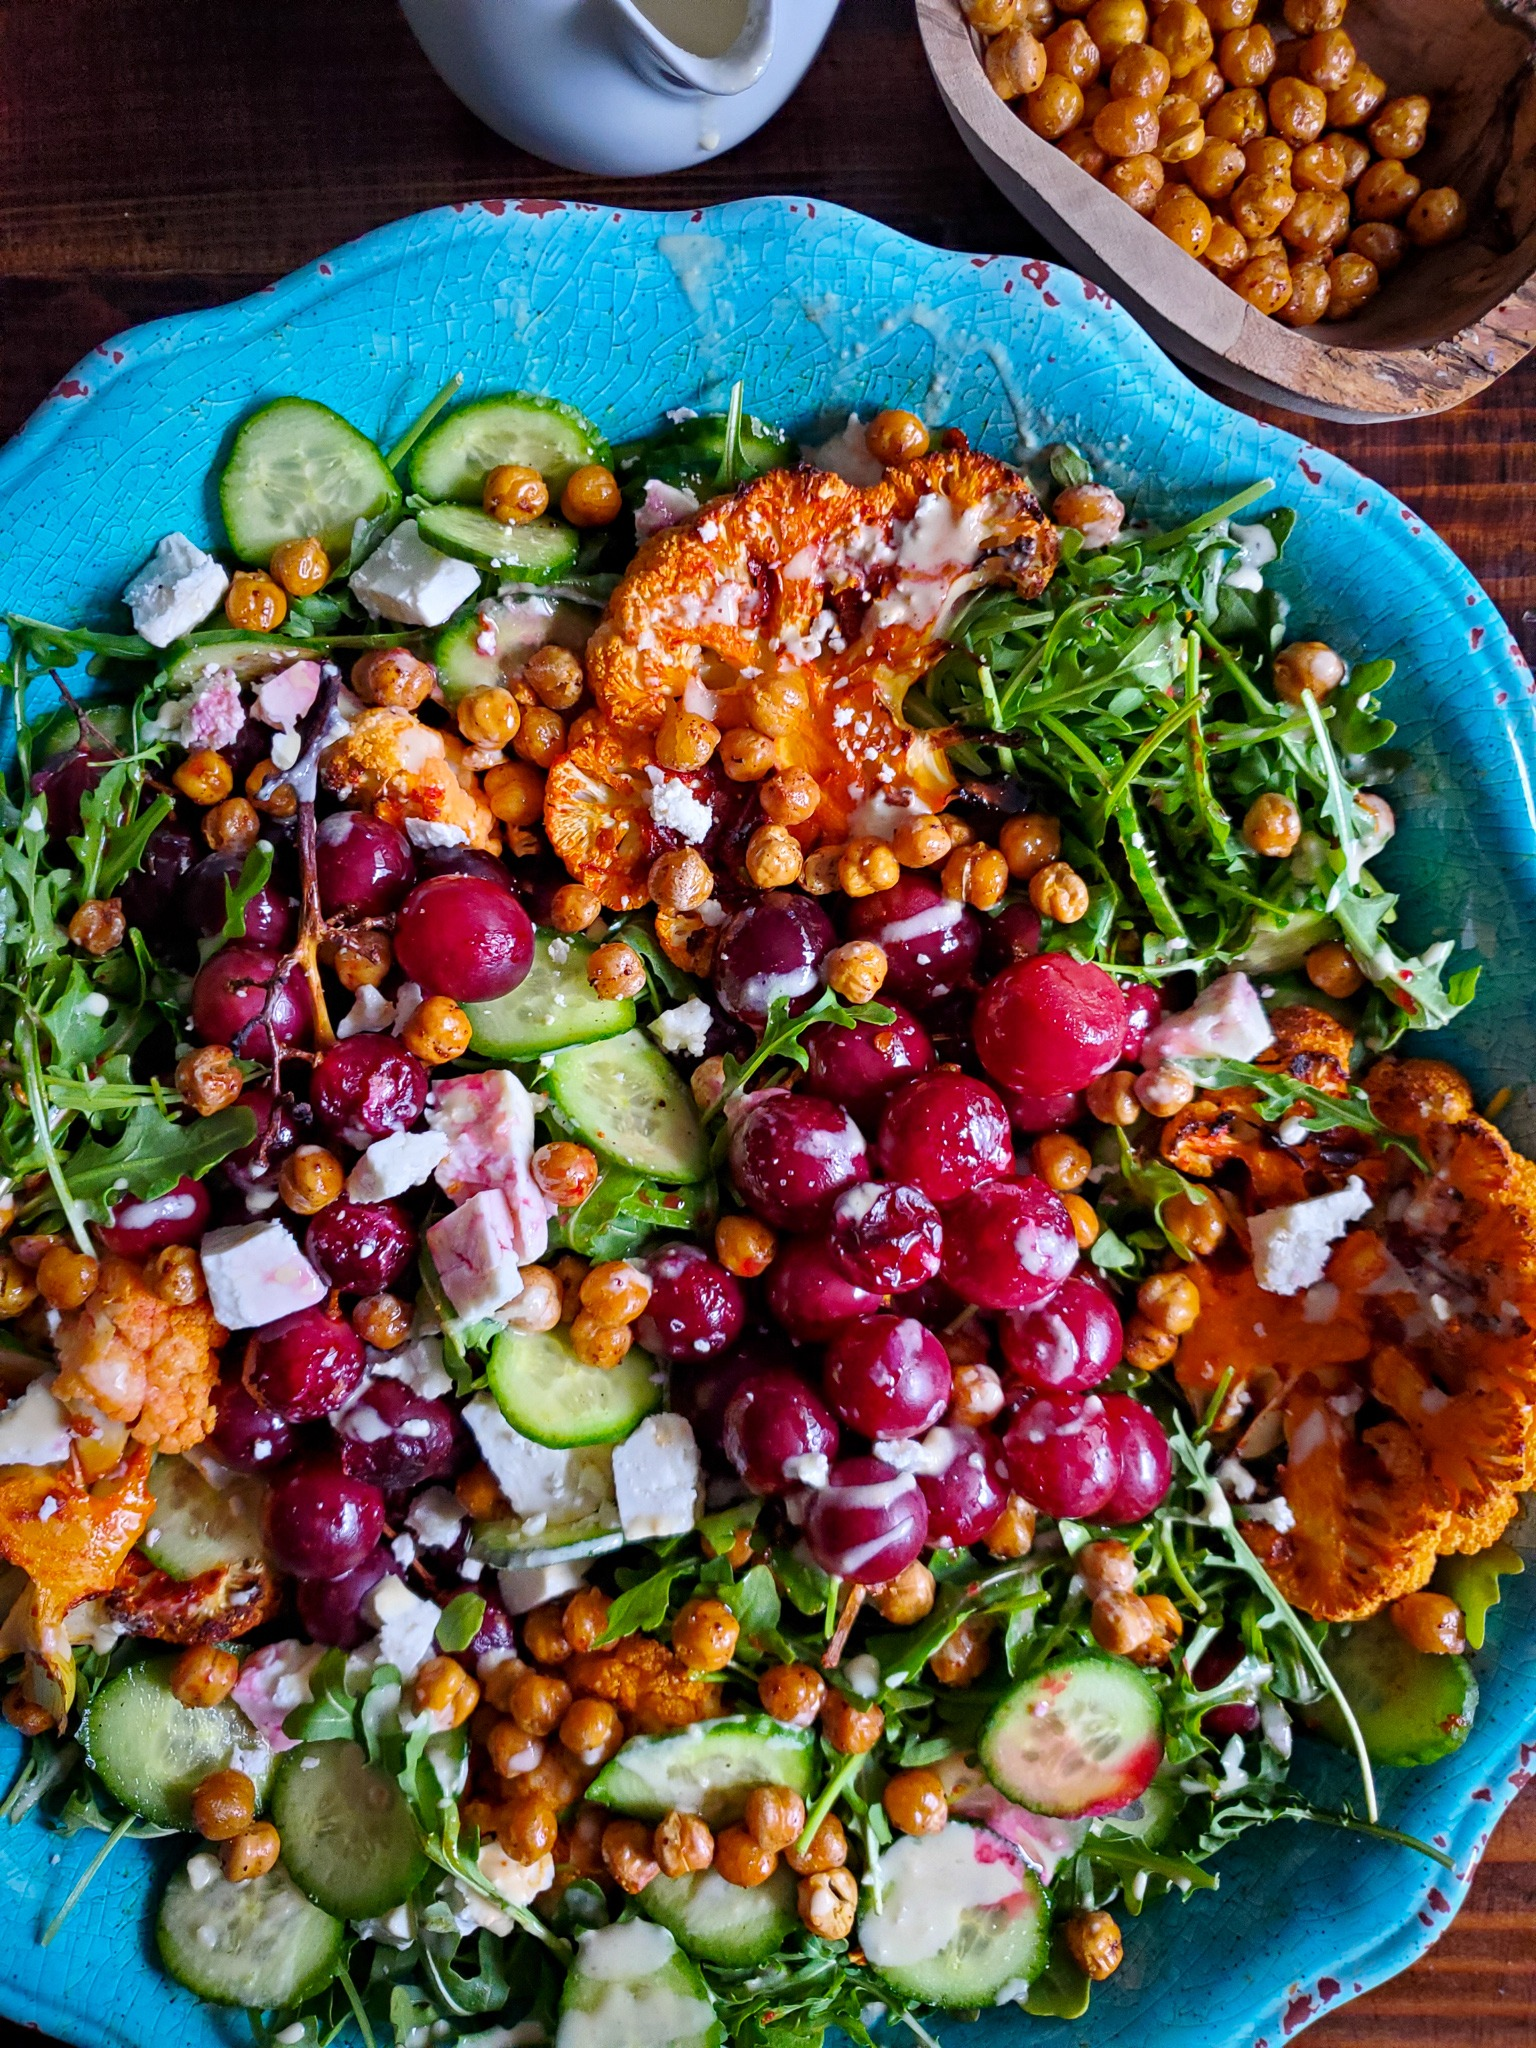 Middle Eastern Salad with Roasted Grapes, Harissa Cauliflower and Tahini Dressing